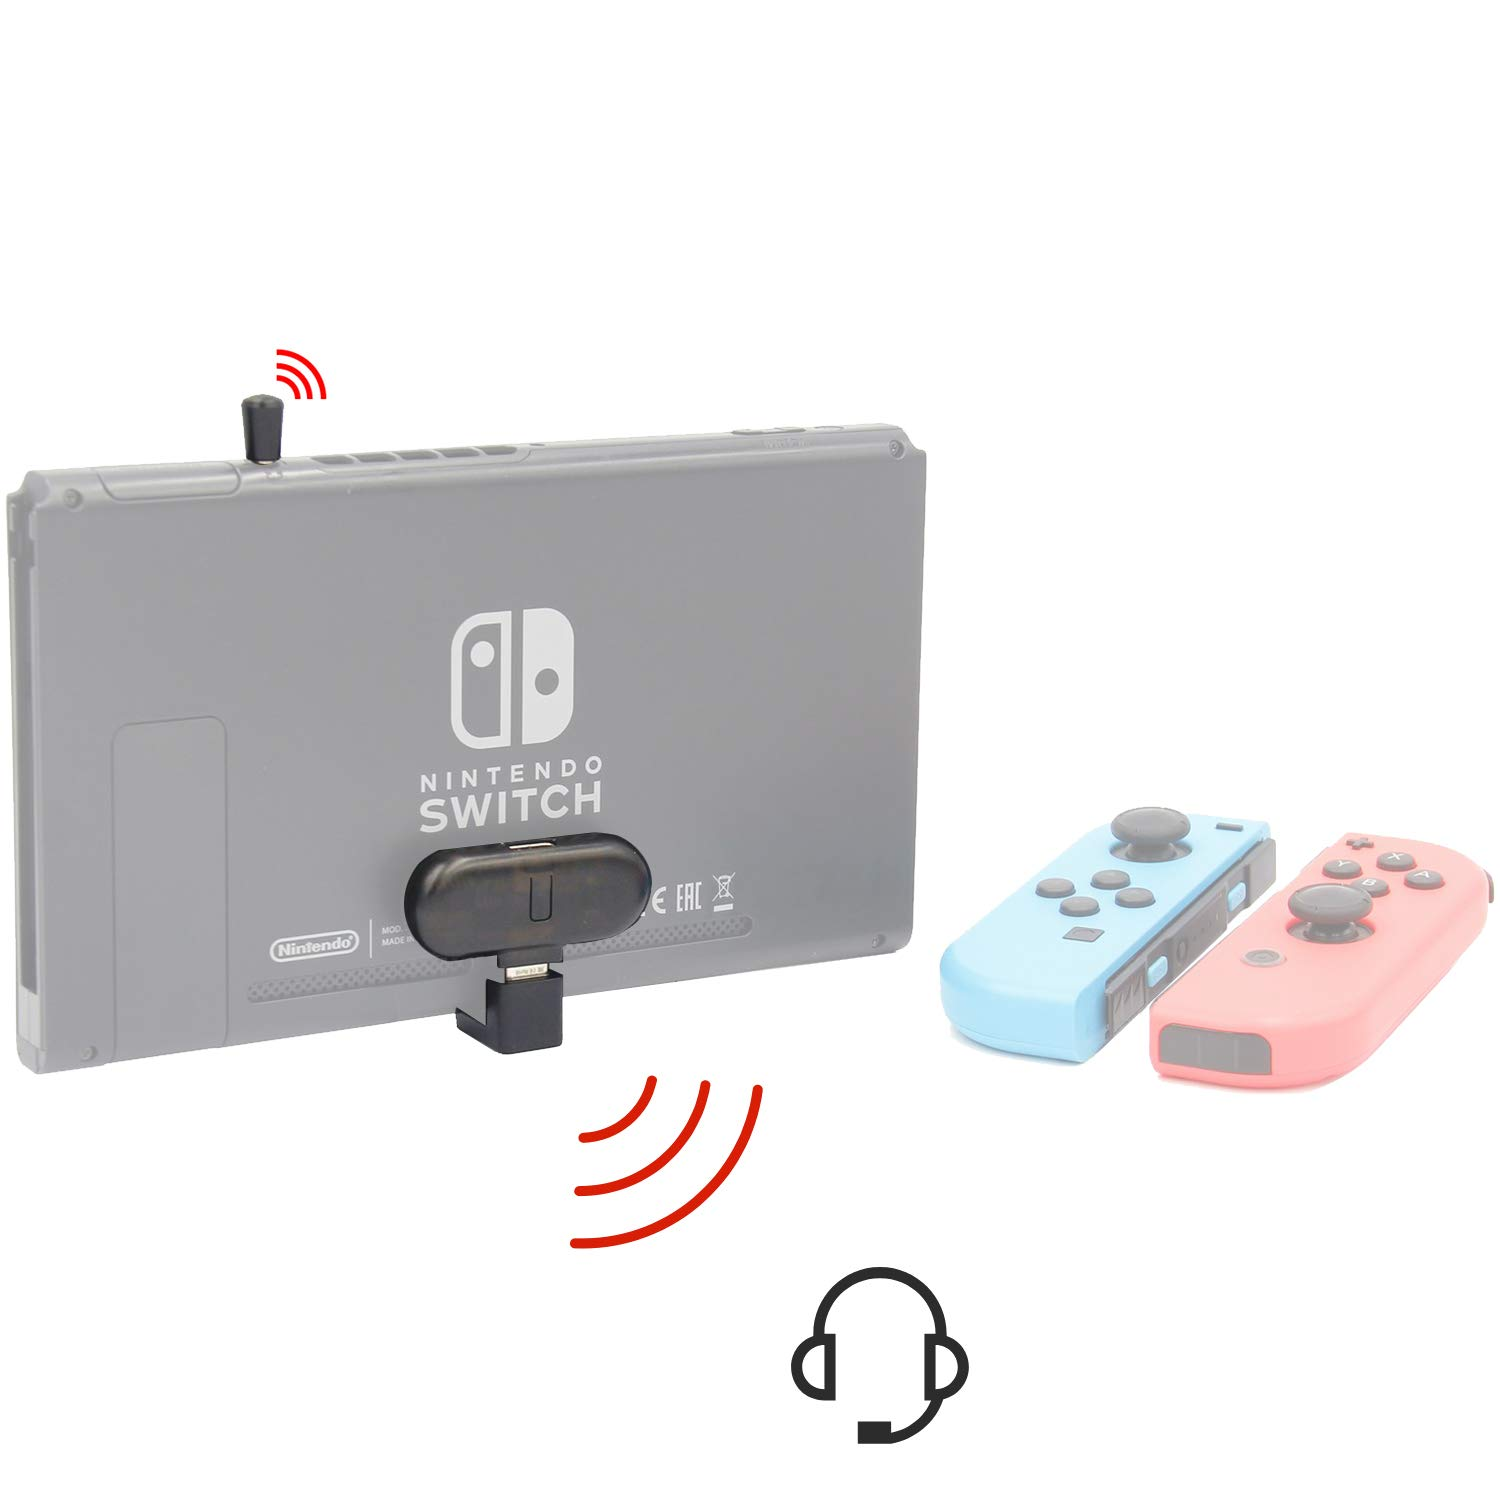 GuliKit Route+ PRO Bluetooth Audio Adapter for Nintendo Switch, USB C Wireless Bluetooth Audio Transmitter, aptX Low Latency, Support in-Game Voice Chat by GULIkit